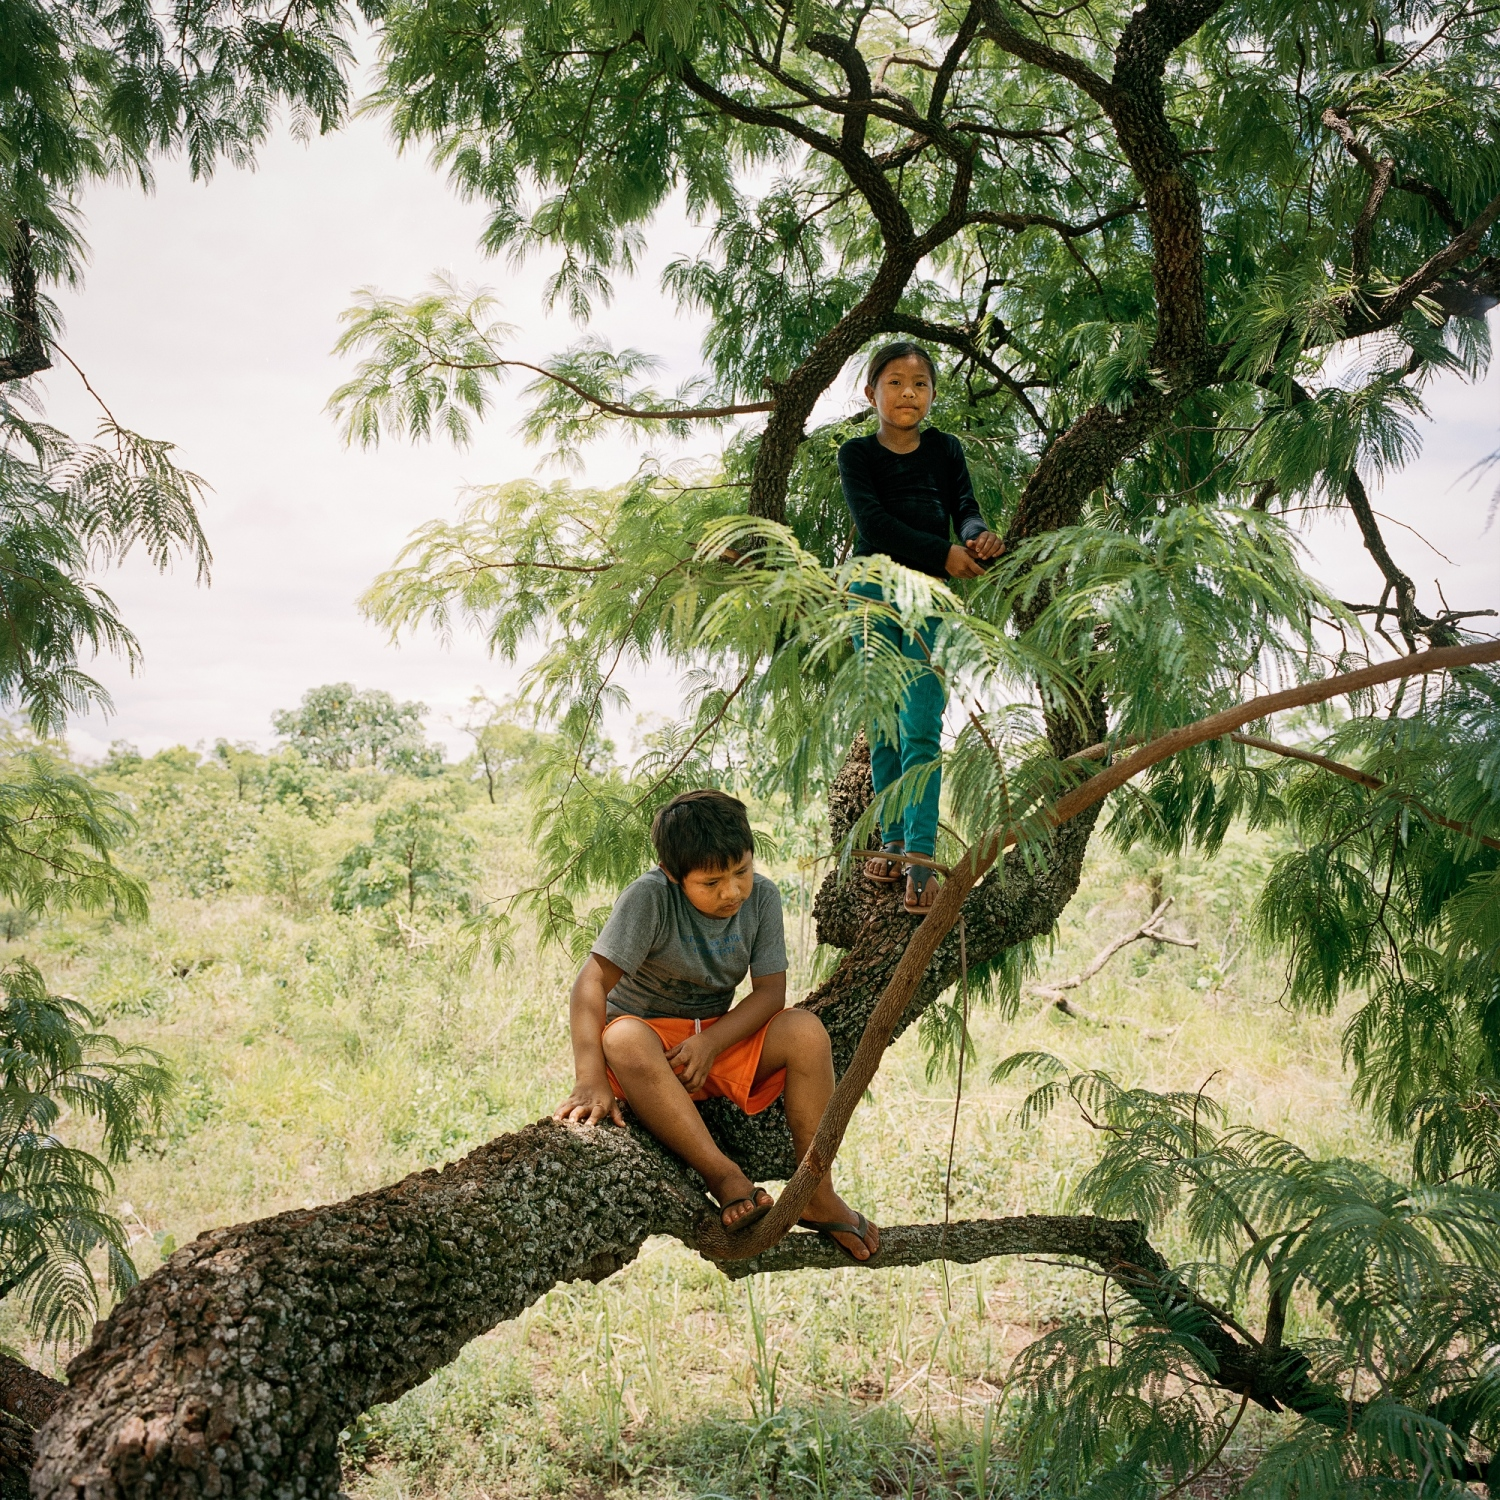 November 29, 2016. Alisson Ortis, 8, left, and Nicole Samoiri Martin, 8, play in a tree in their yard in Amambai Reserve. Nicole lost her father Nivaldo Chara Martin, 42, and brother Michelleu, 15, to suicide in the Guarani-Kaiowa Amambai Indigenous Reserve in Matto Grosso Du Sul, Brazil.